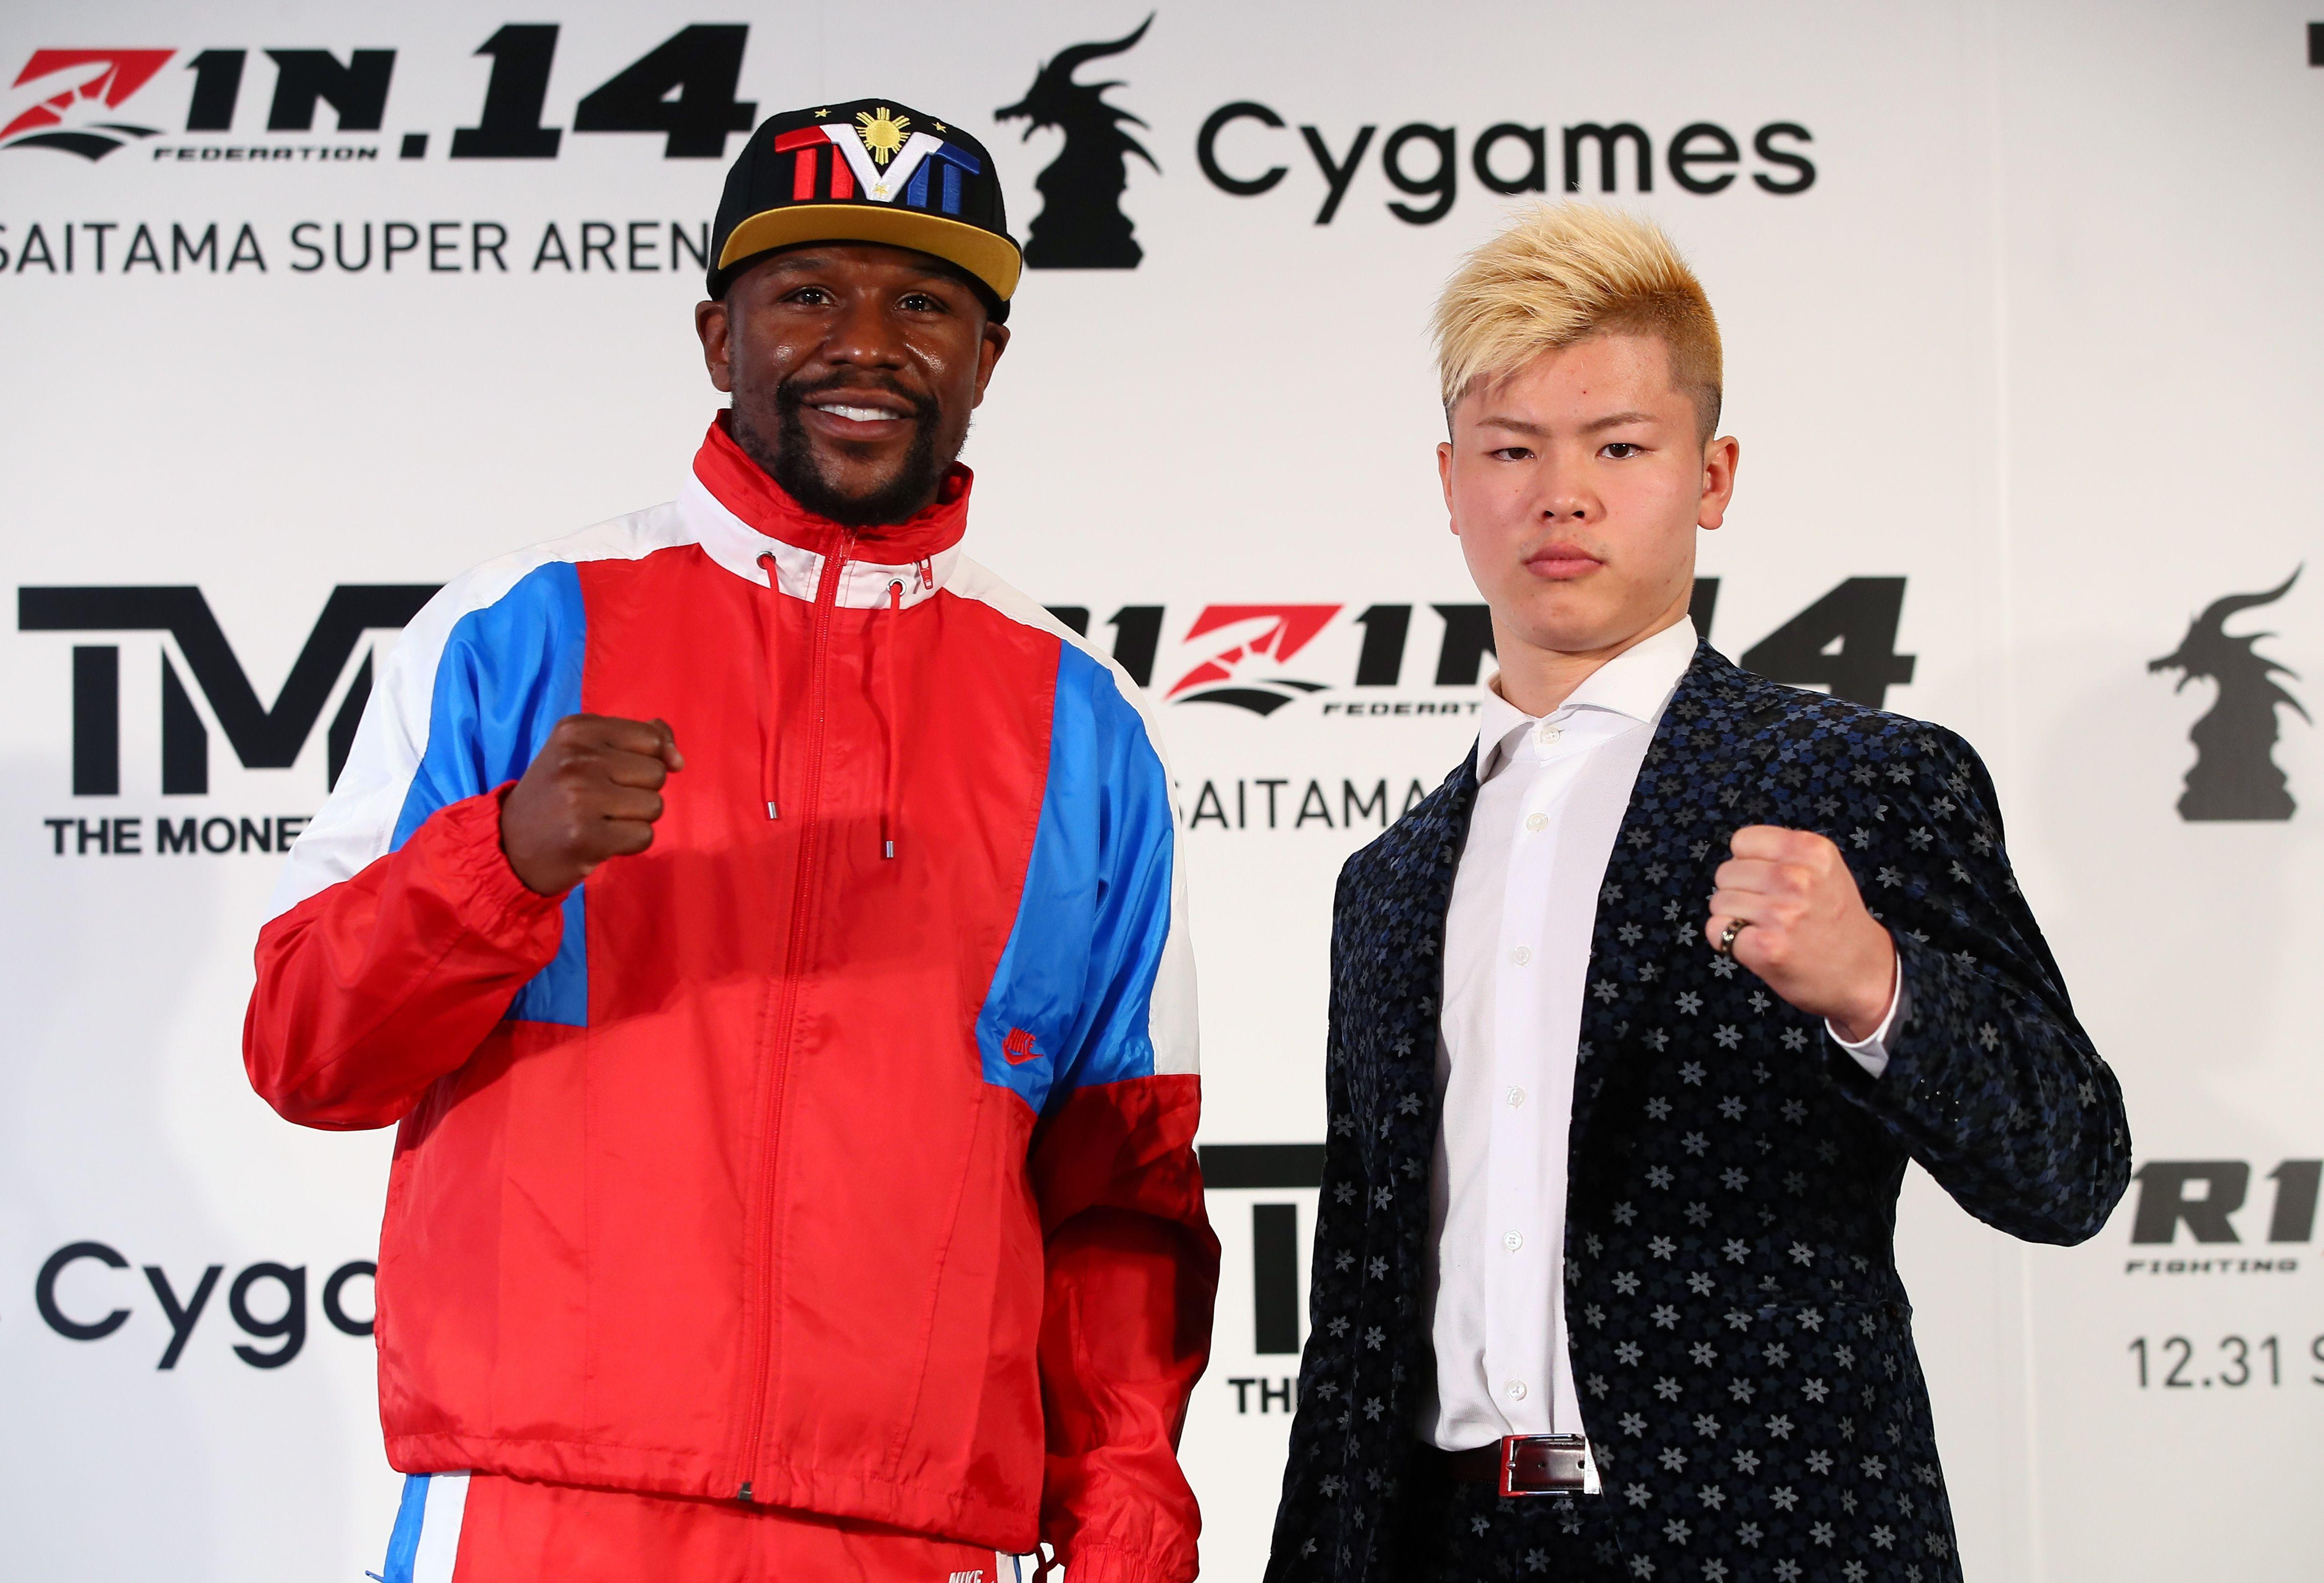 Mayweather will fight Japanese kickboxer Tenshin Nasukawa in Tokyo at the end of the year